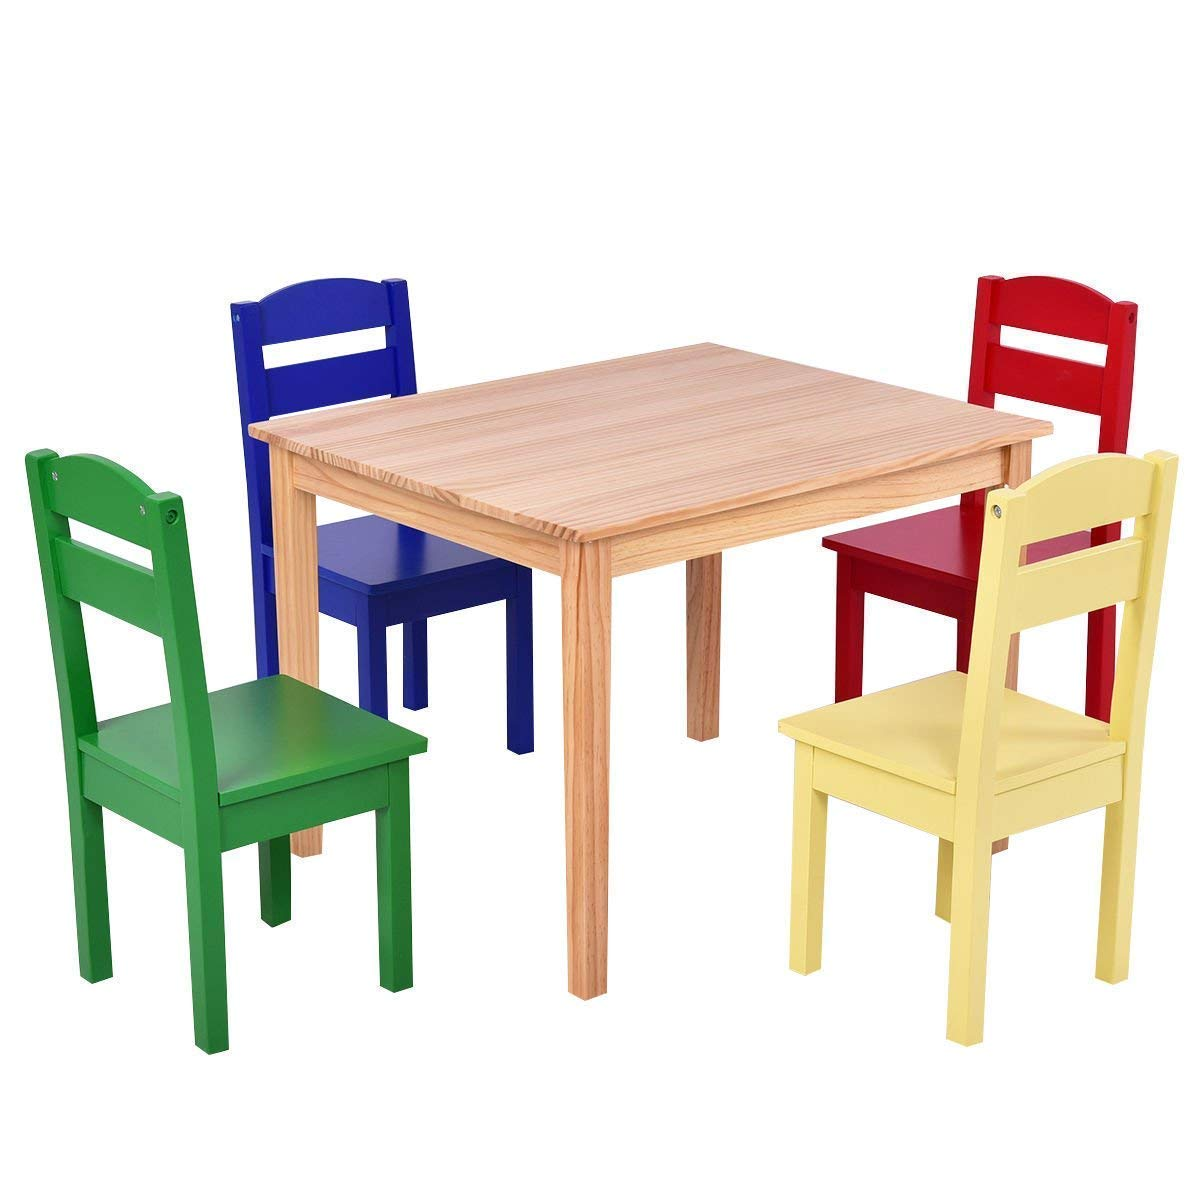 Awesome Costzon Kids Wooden Table And 4 Chair Set 5 Pieces Set Includes 4 Chairs And 1 Activity Table Toddler Table For 2 6 Years Playroom Furniture Interior Design Ideas Jittwwsoteloinfo